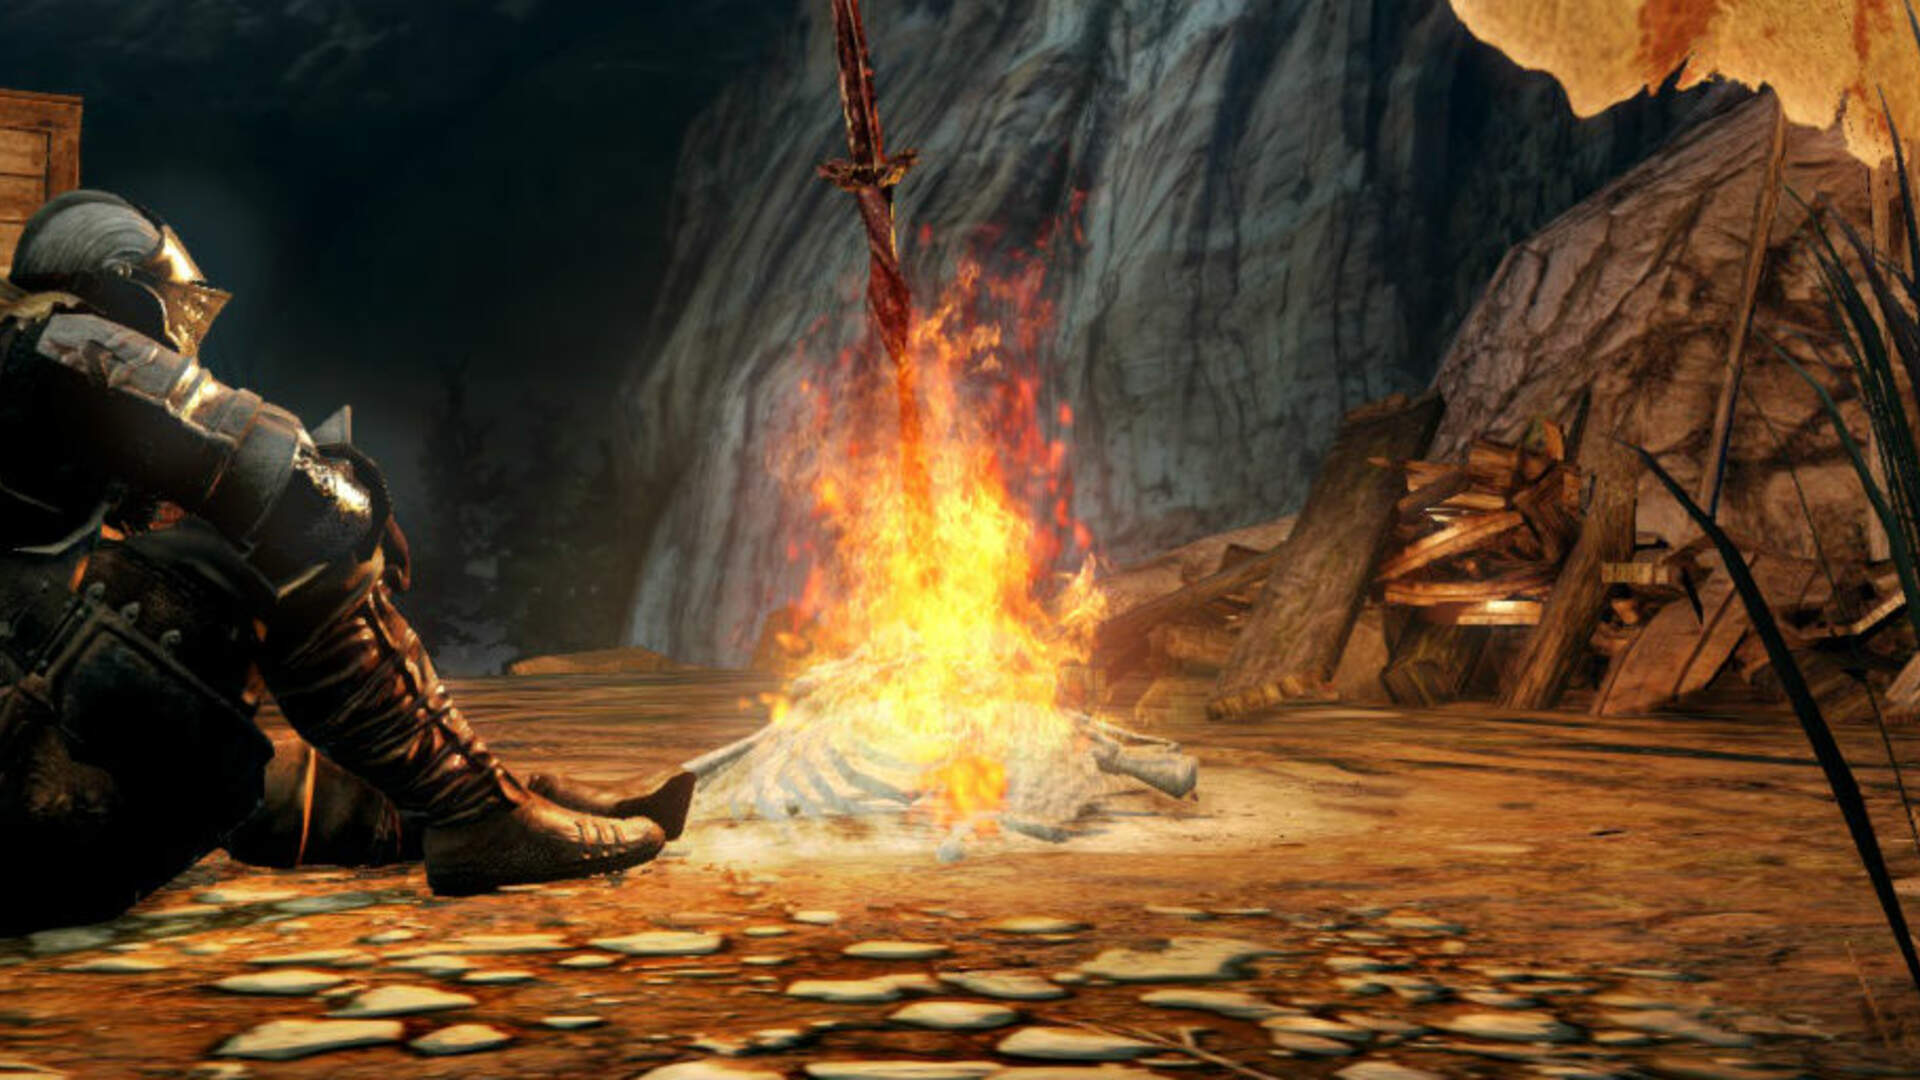 Dark Souls 2 Guide: The Doors of Pharros and How to Defeat the Royal Rat Authority